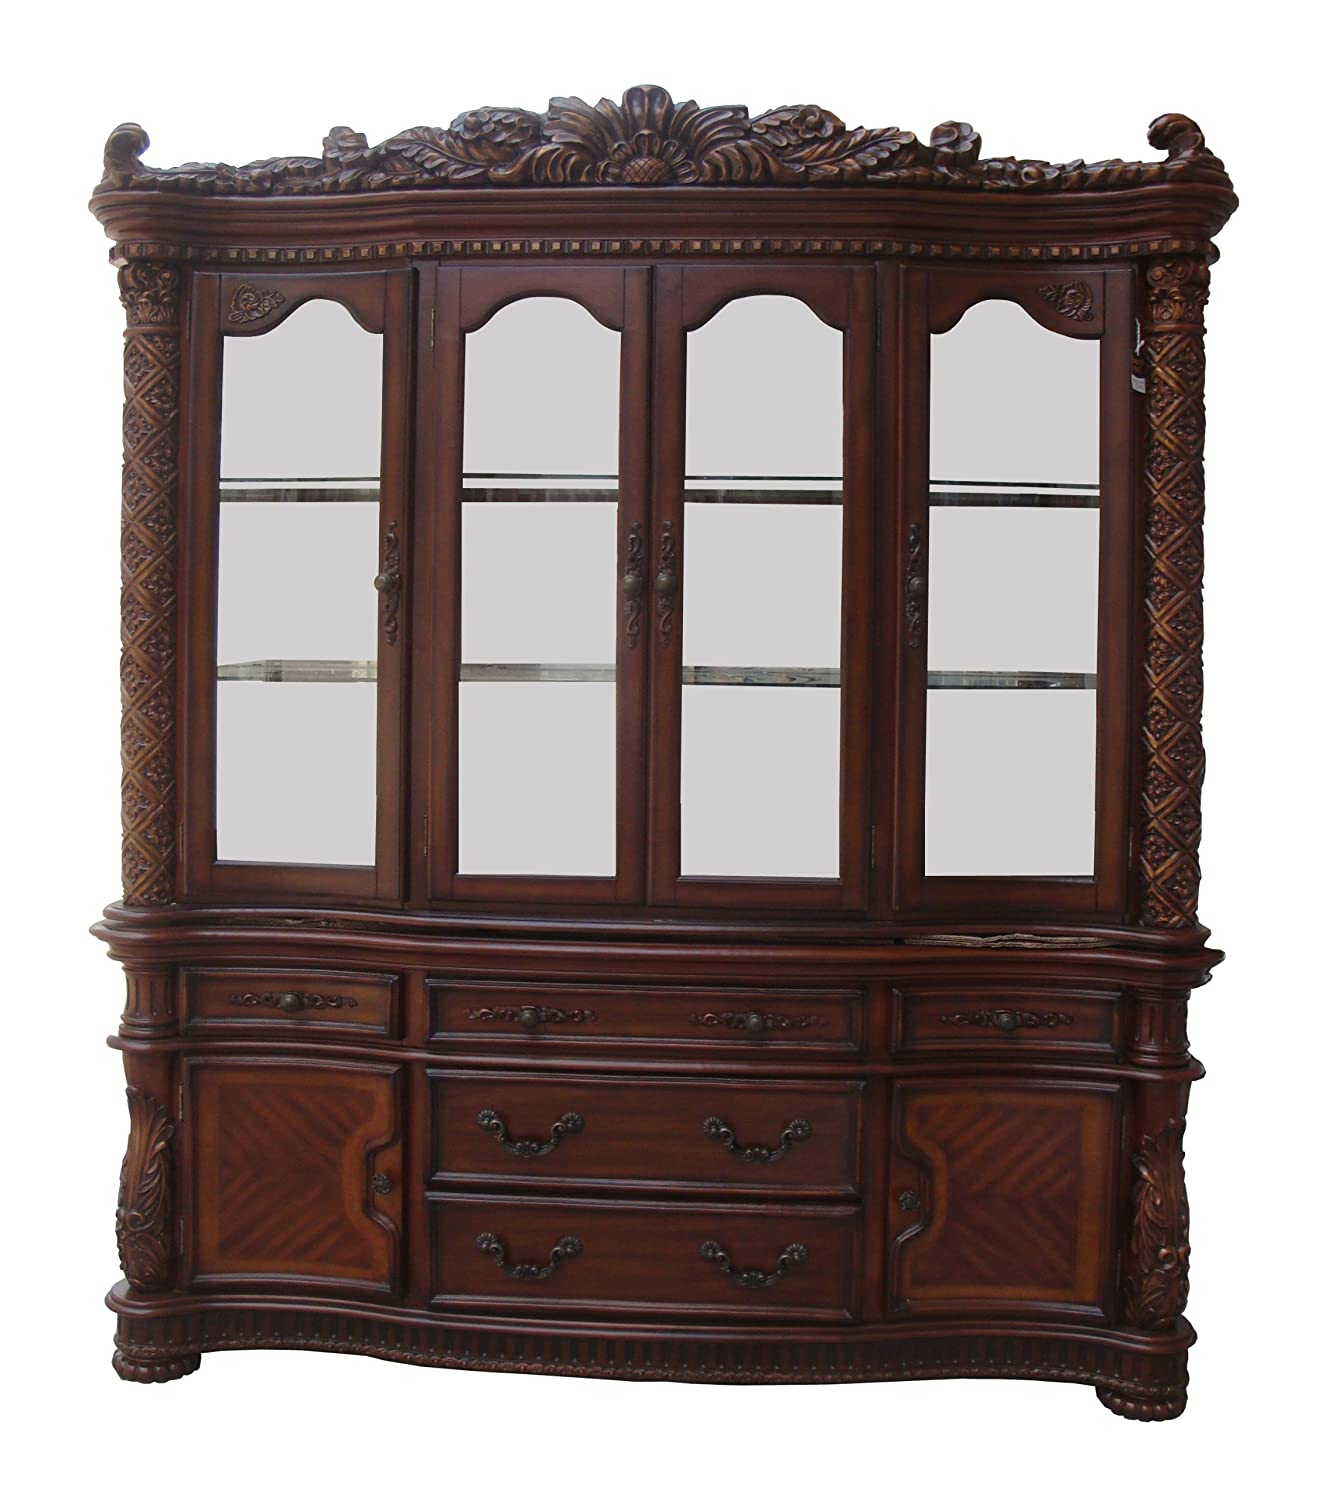 ACME 60006 Vendome Hutch And Buffet China Cabinet Cherry Finish